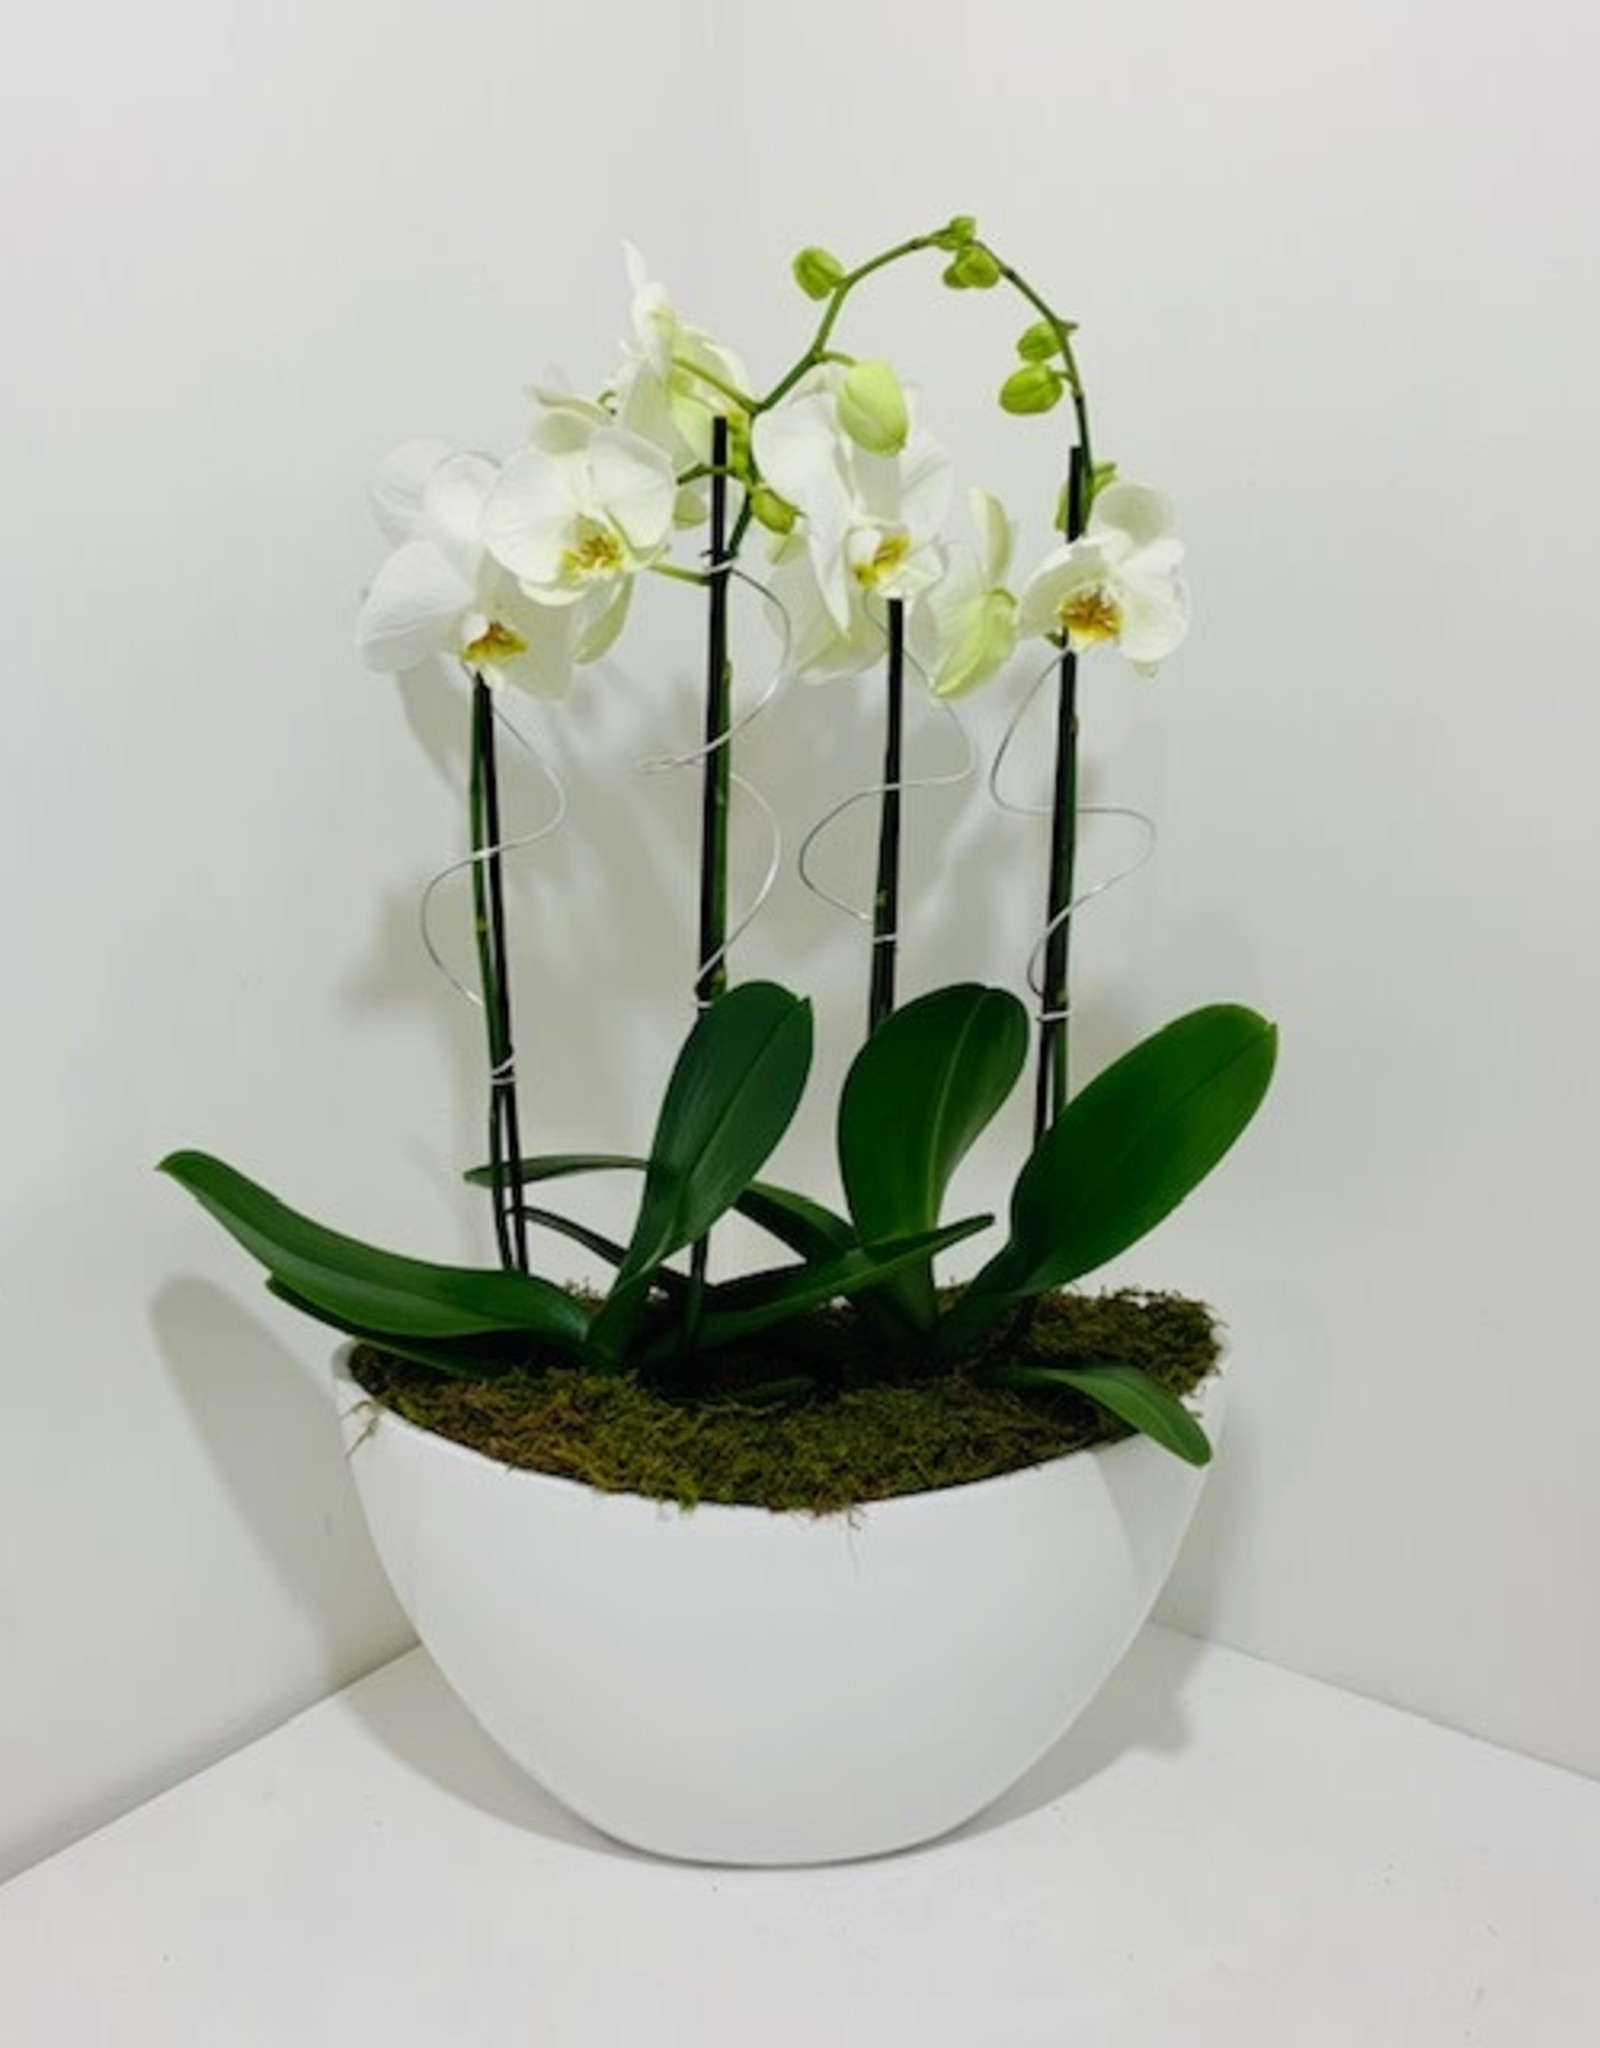 Orchid Arrangement, Great gift idea for her.